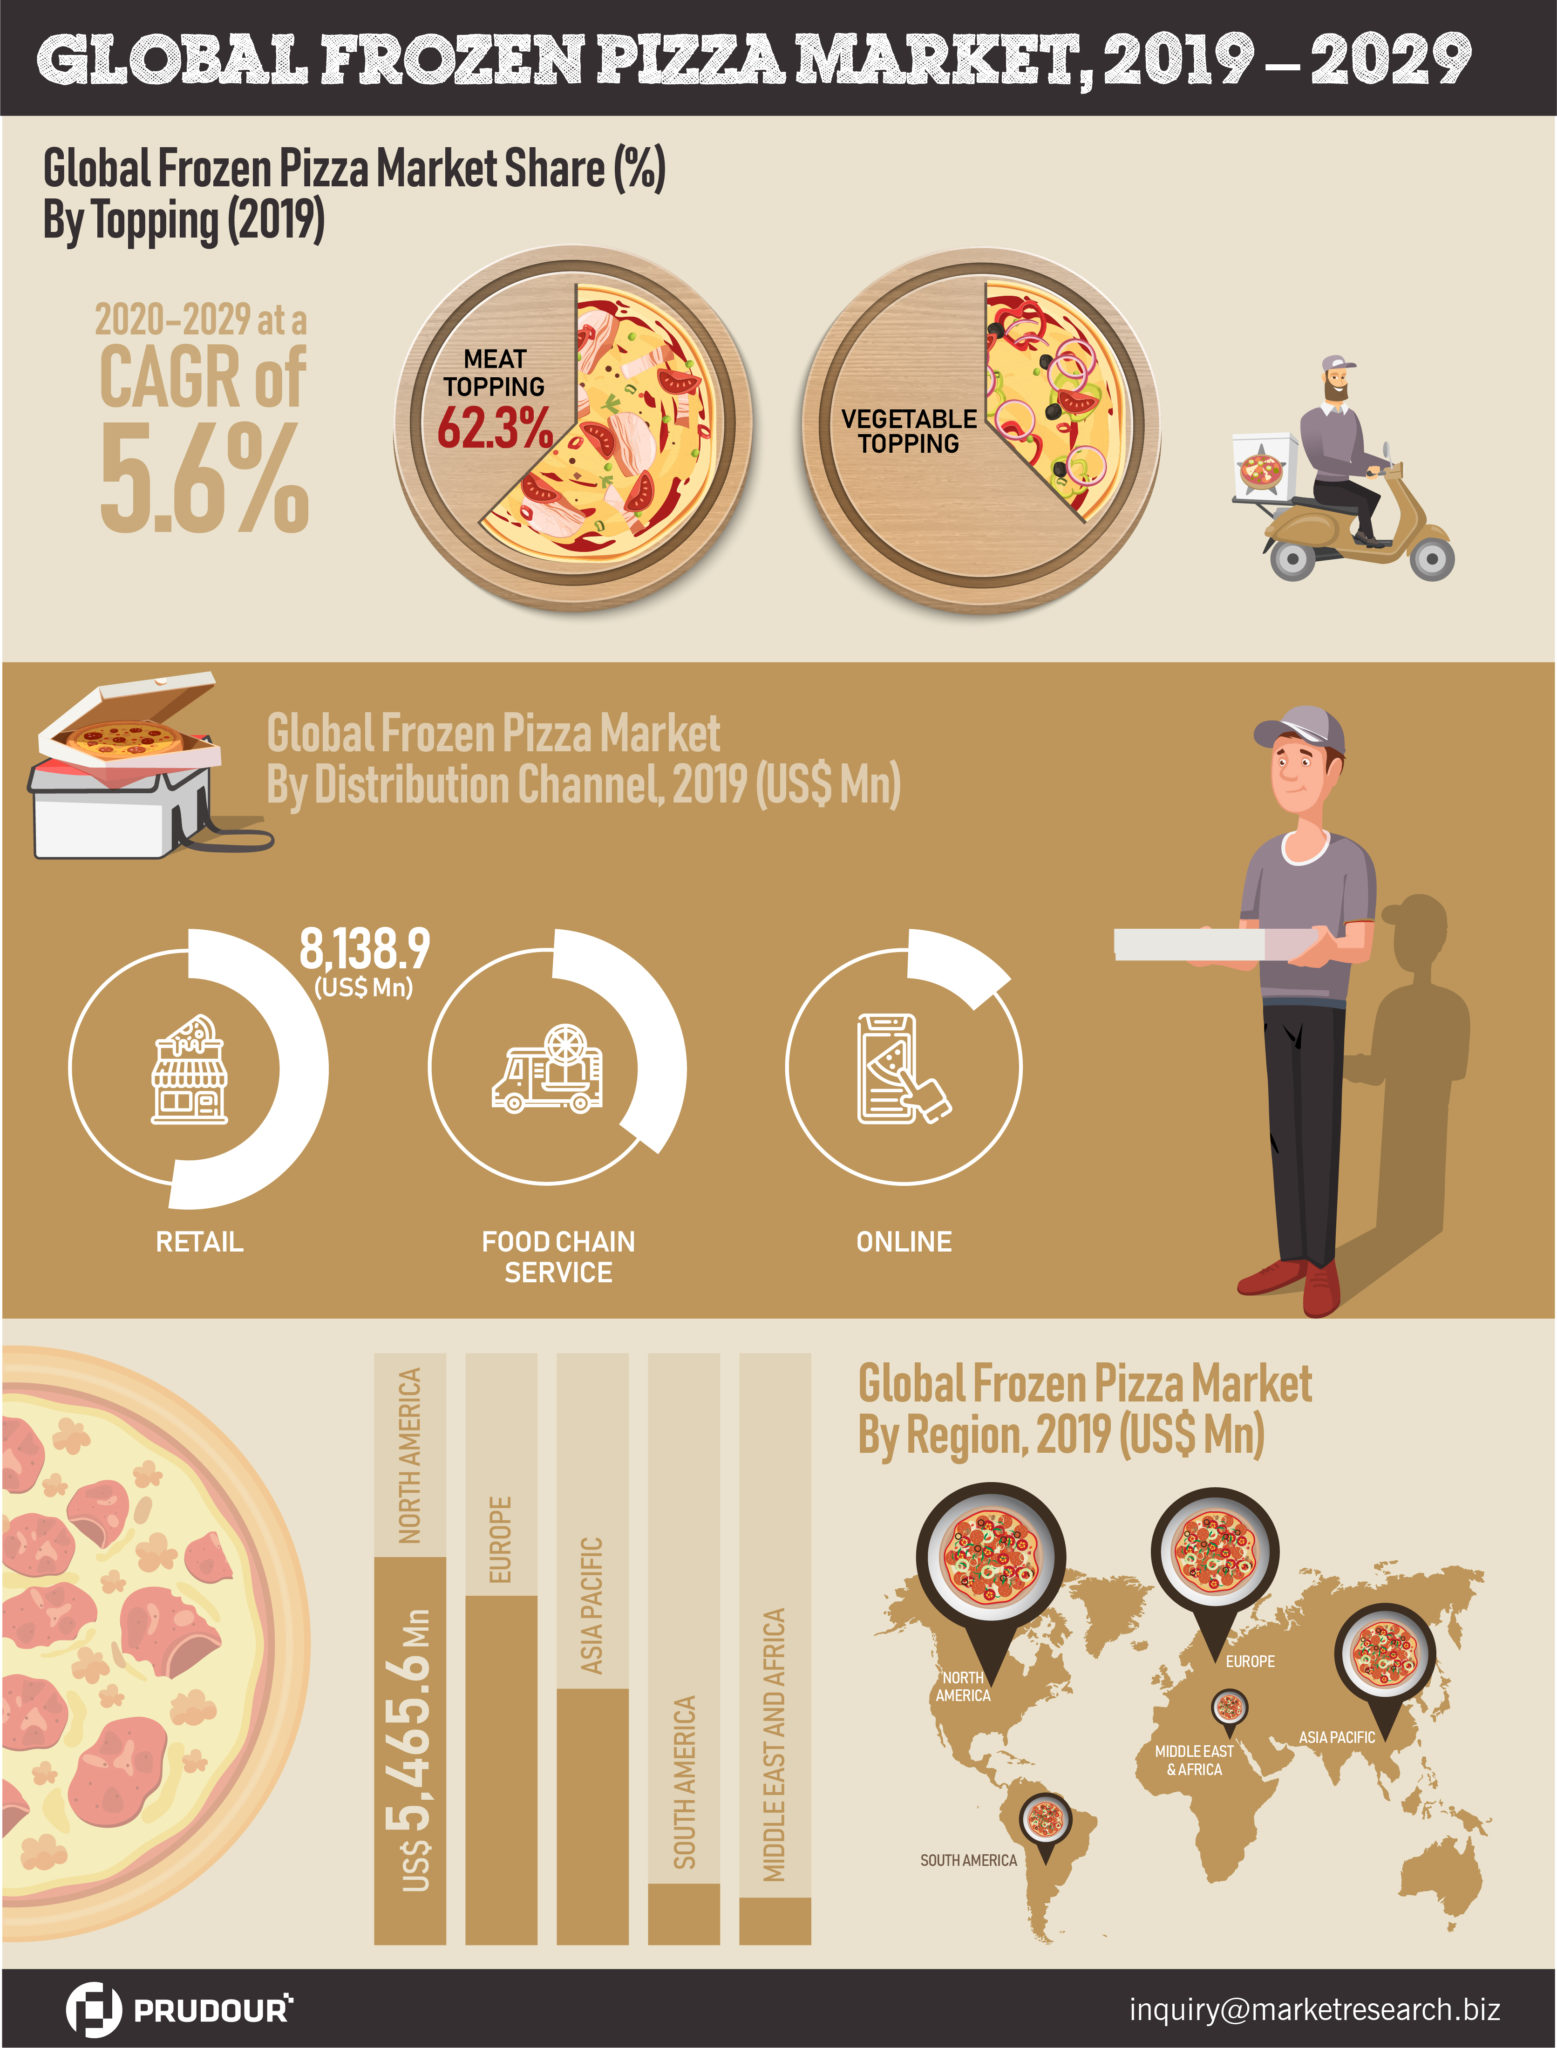 US$ 26 Bn in 2029: Global Frozen Pizza Market is expected to reach US$ 26 Bn in 2029